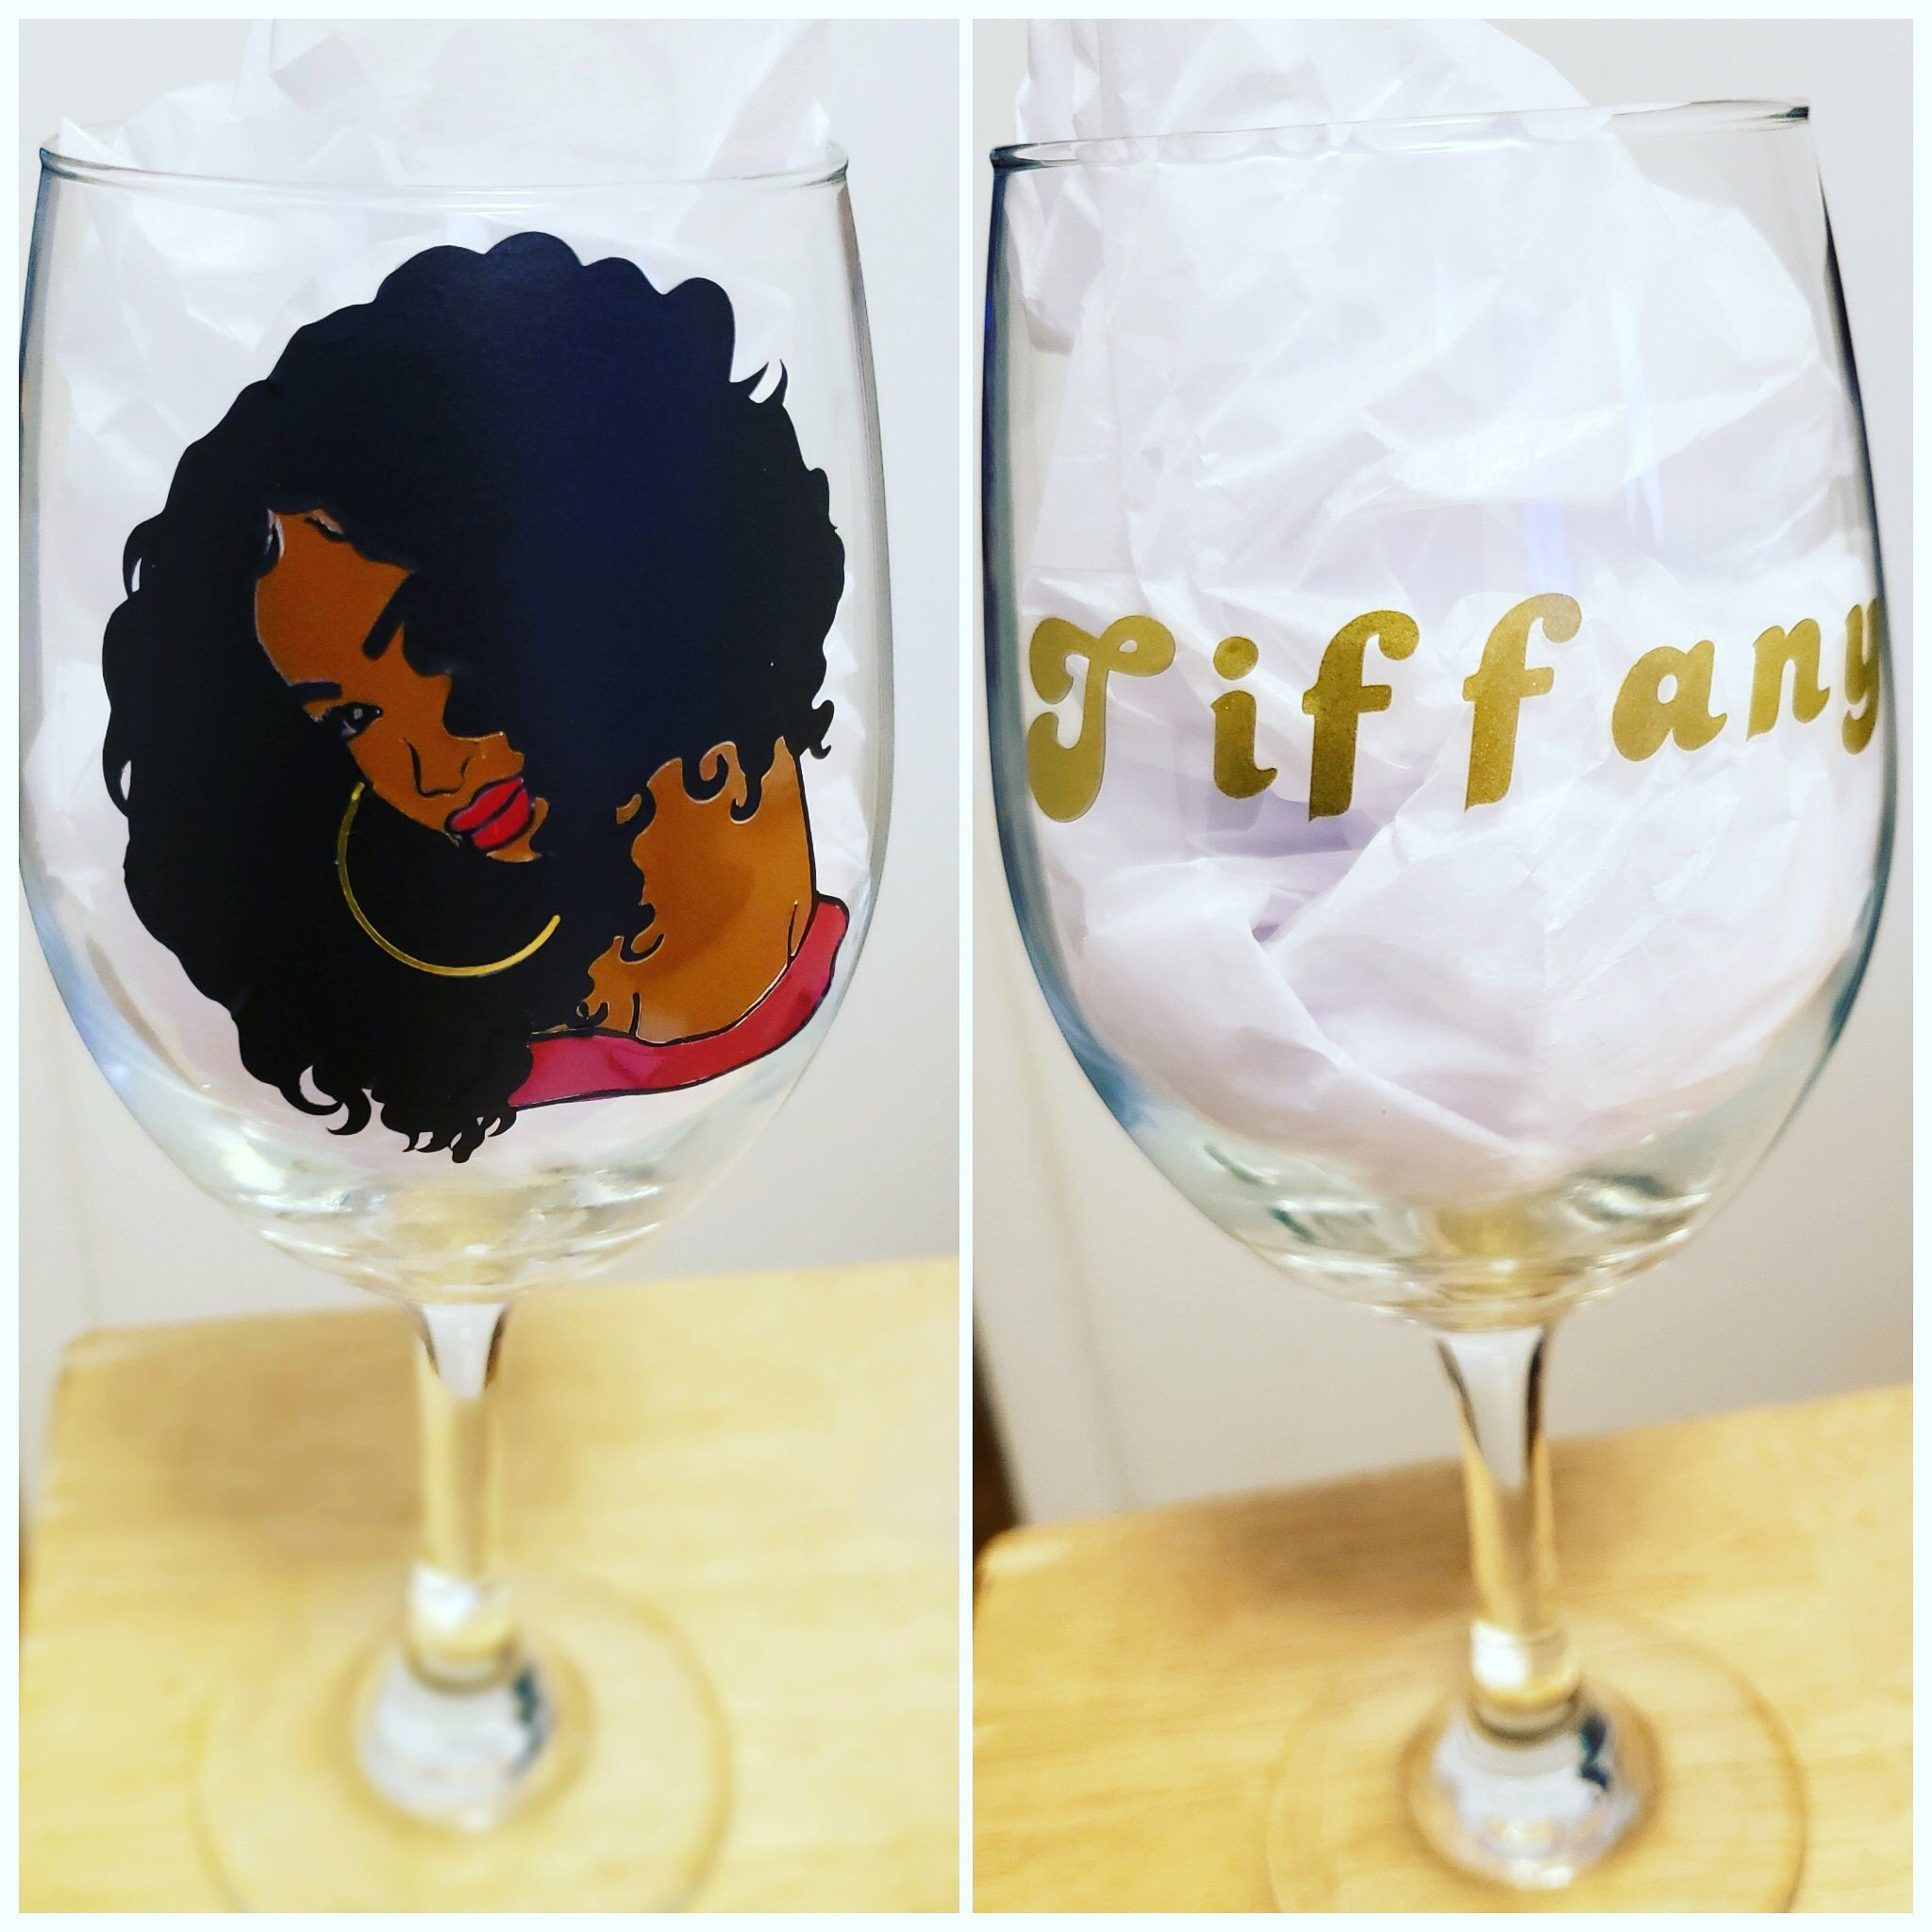 Personalized Wine Glass in Gift Box Black Woman African